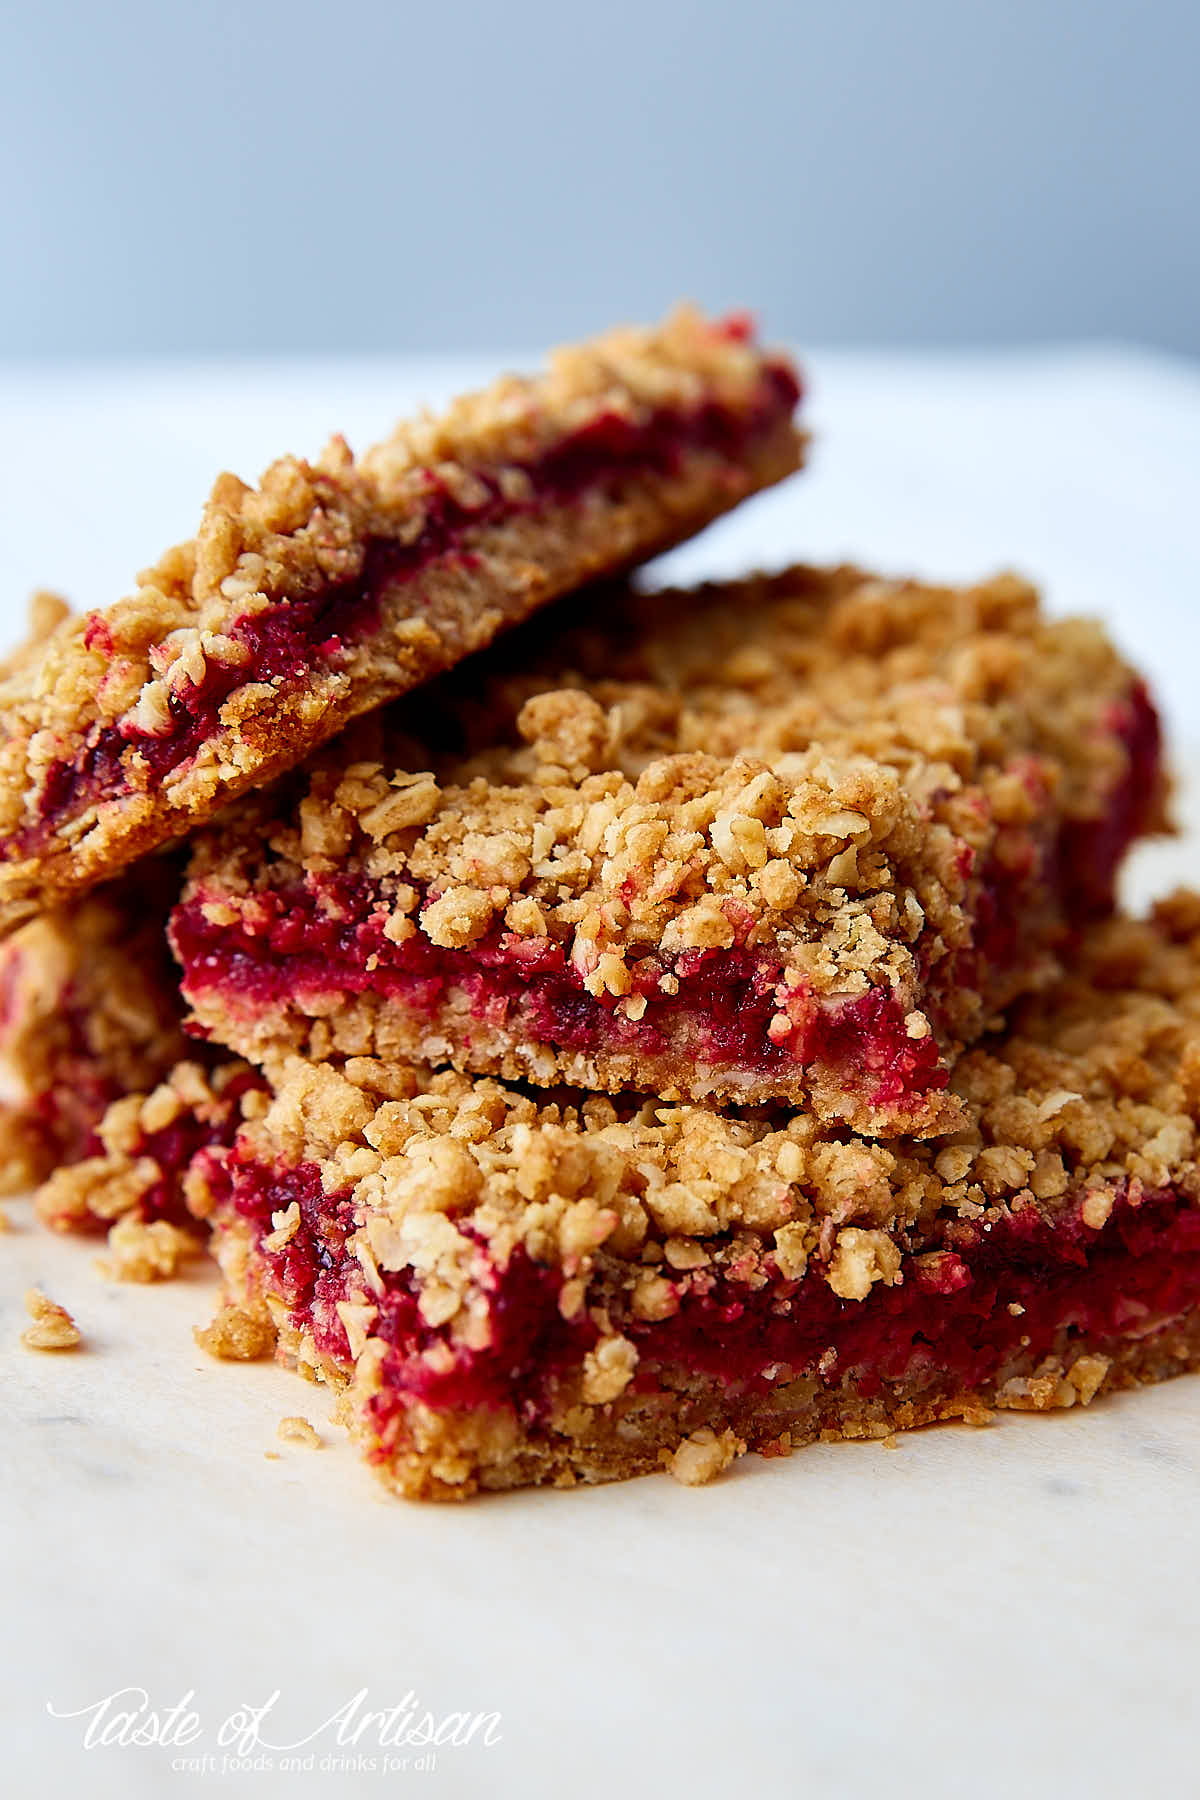 Cherry oat bars stacked on top each other on a table.